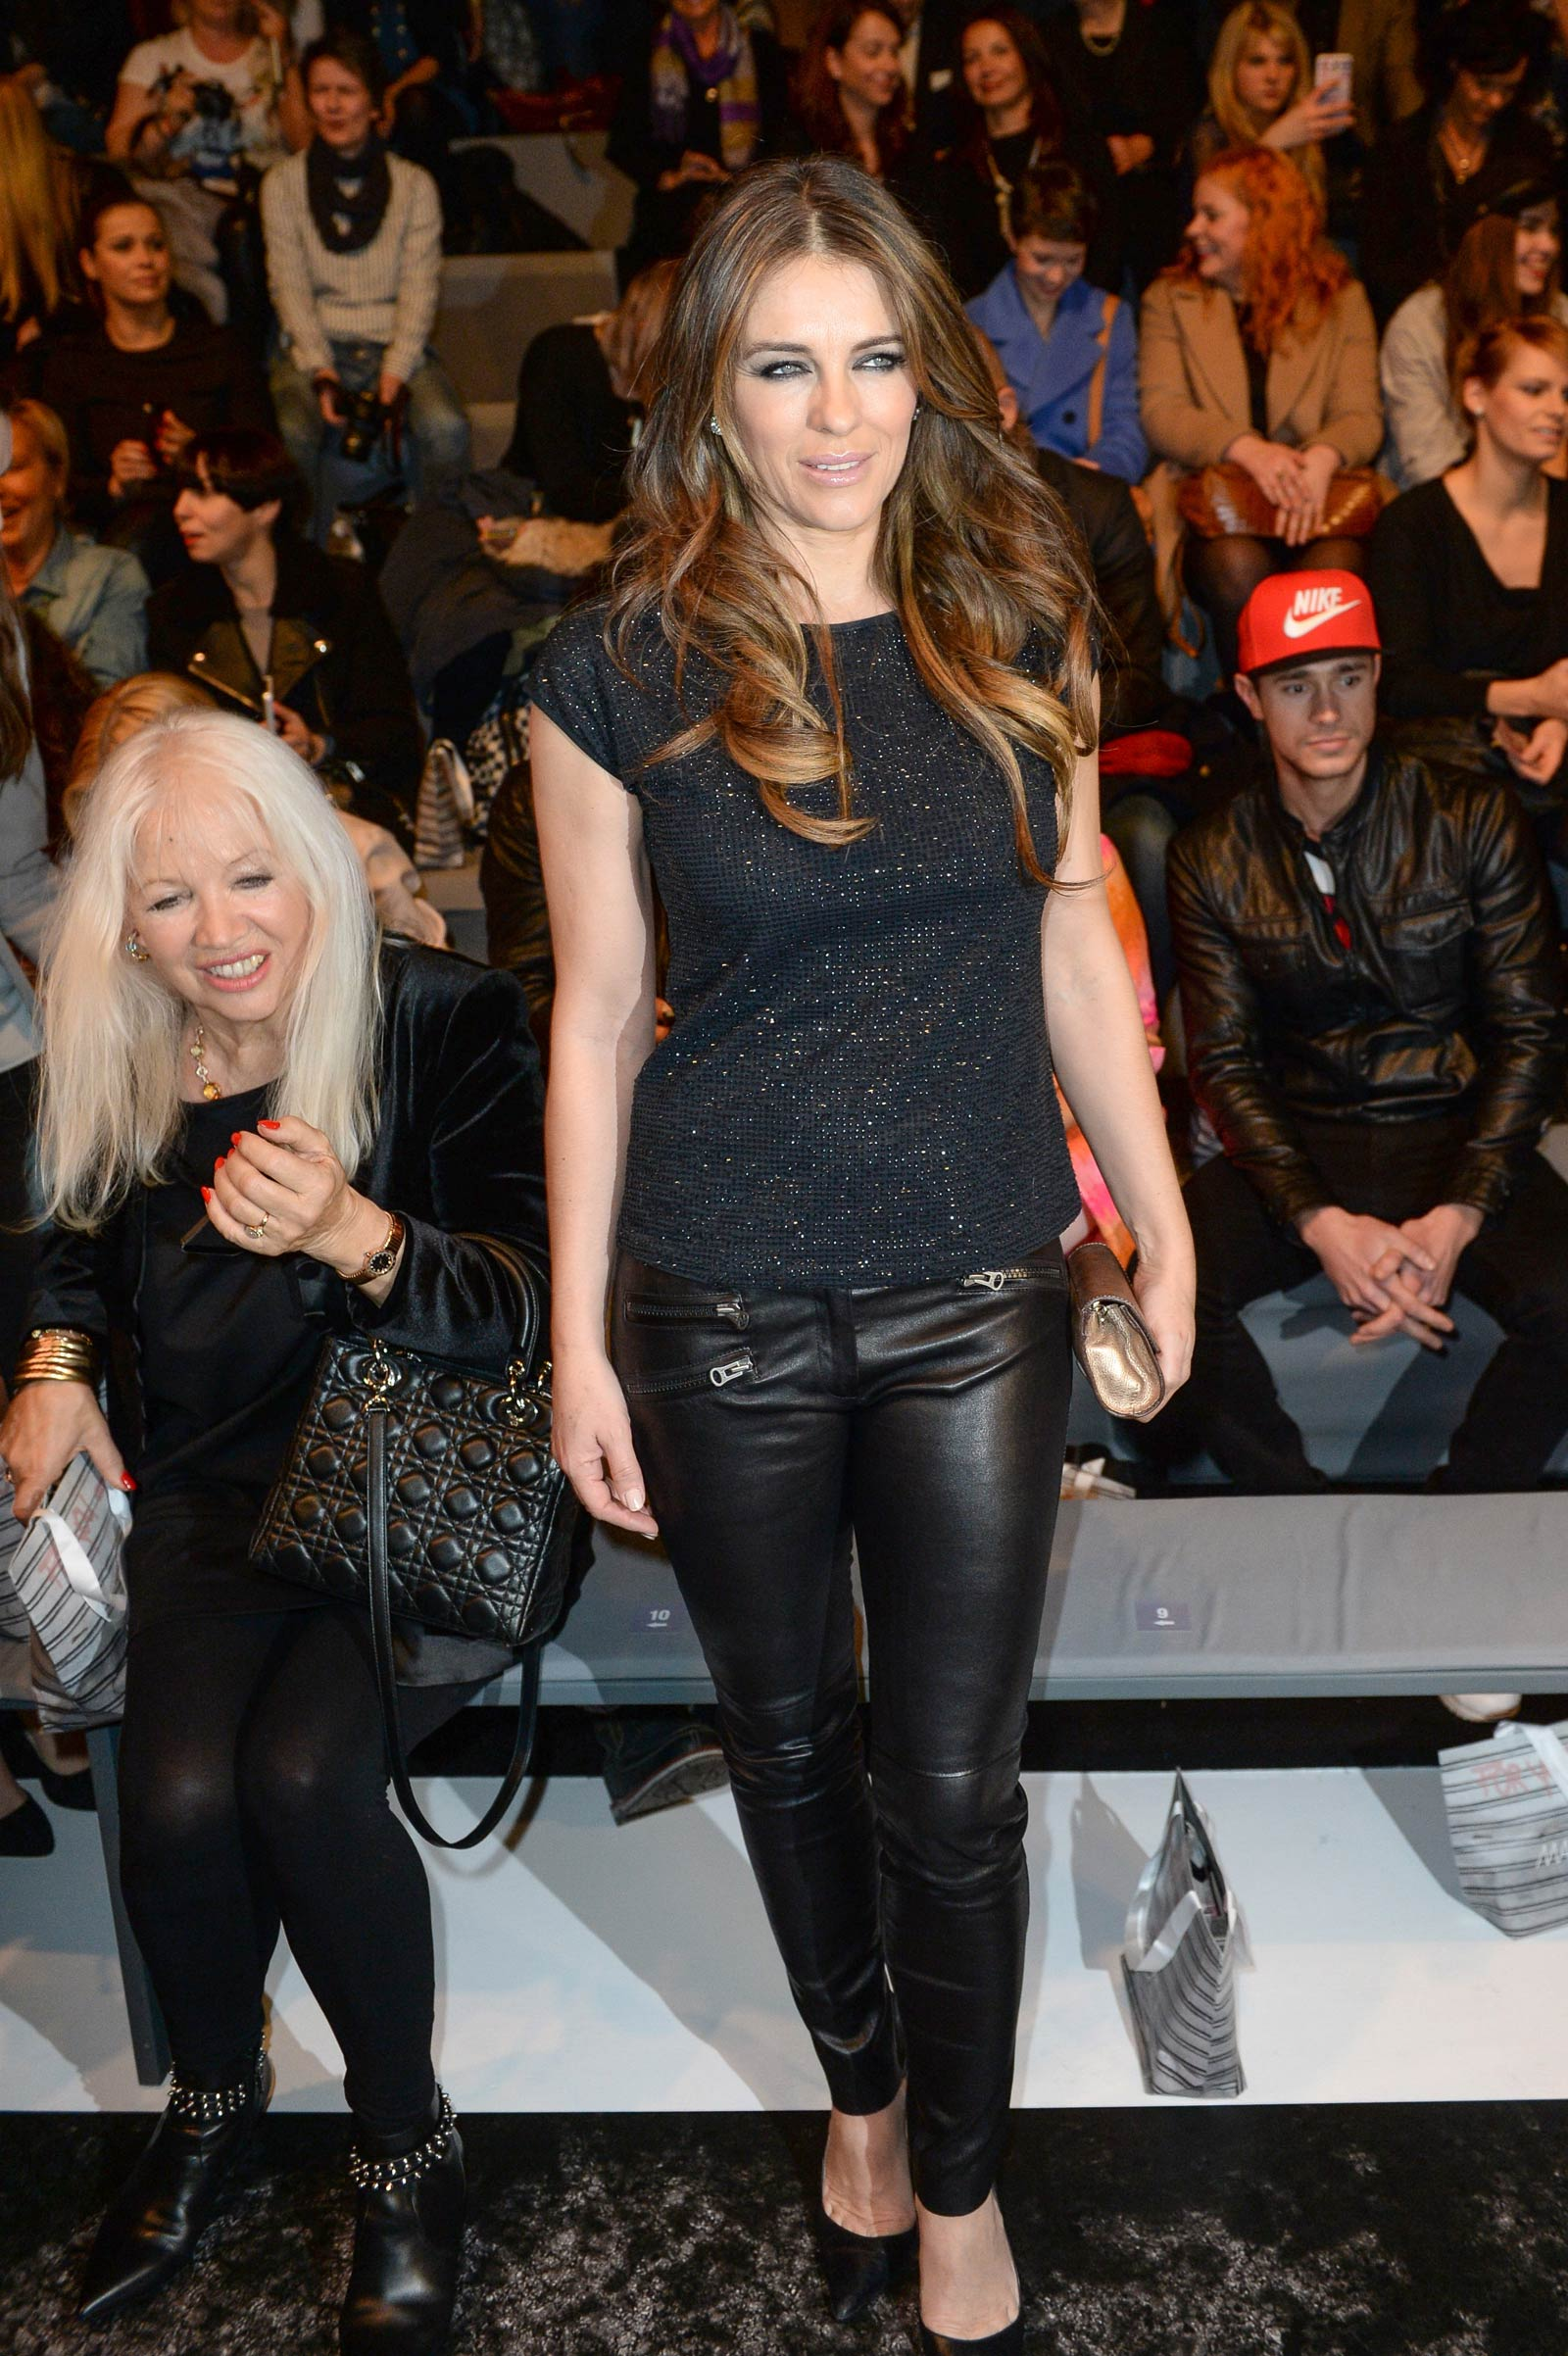 Elizabeth Hurley attends the Marc Cain show at the Mercedes-Benz Fashion Week